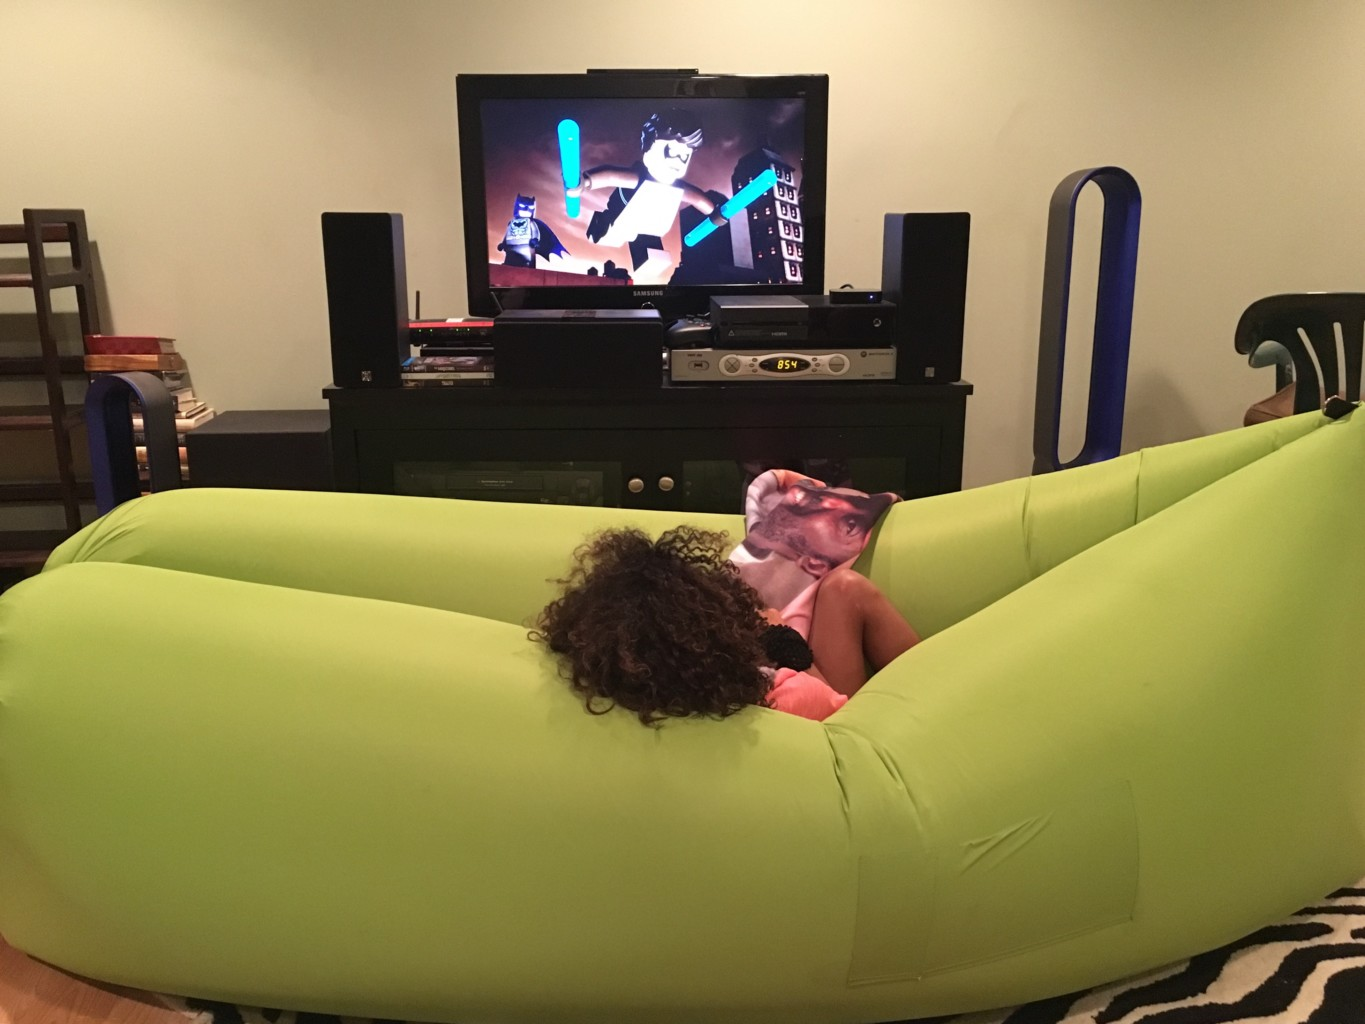 inflatable lounge furniture. Alex Yarde, Geek \u0026 Gentleman Of Leisure, Reviews The New Summer Essential He Never Knew Needed, SUMO AIR Lounger! Inflatable Lounge Furniture